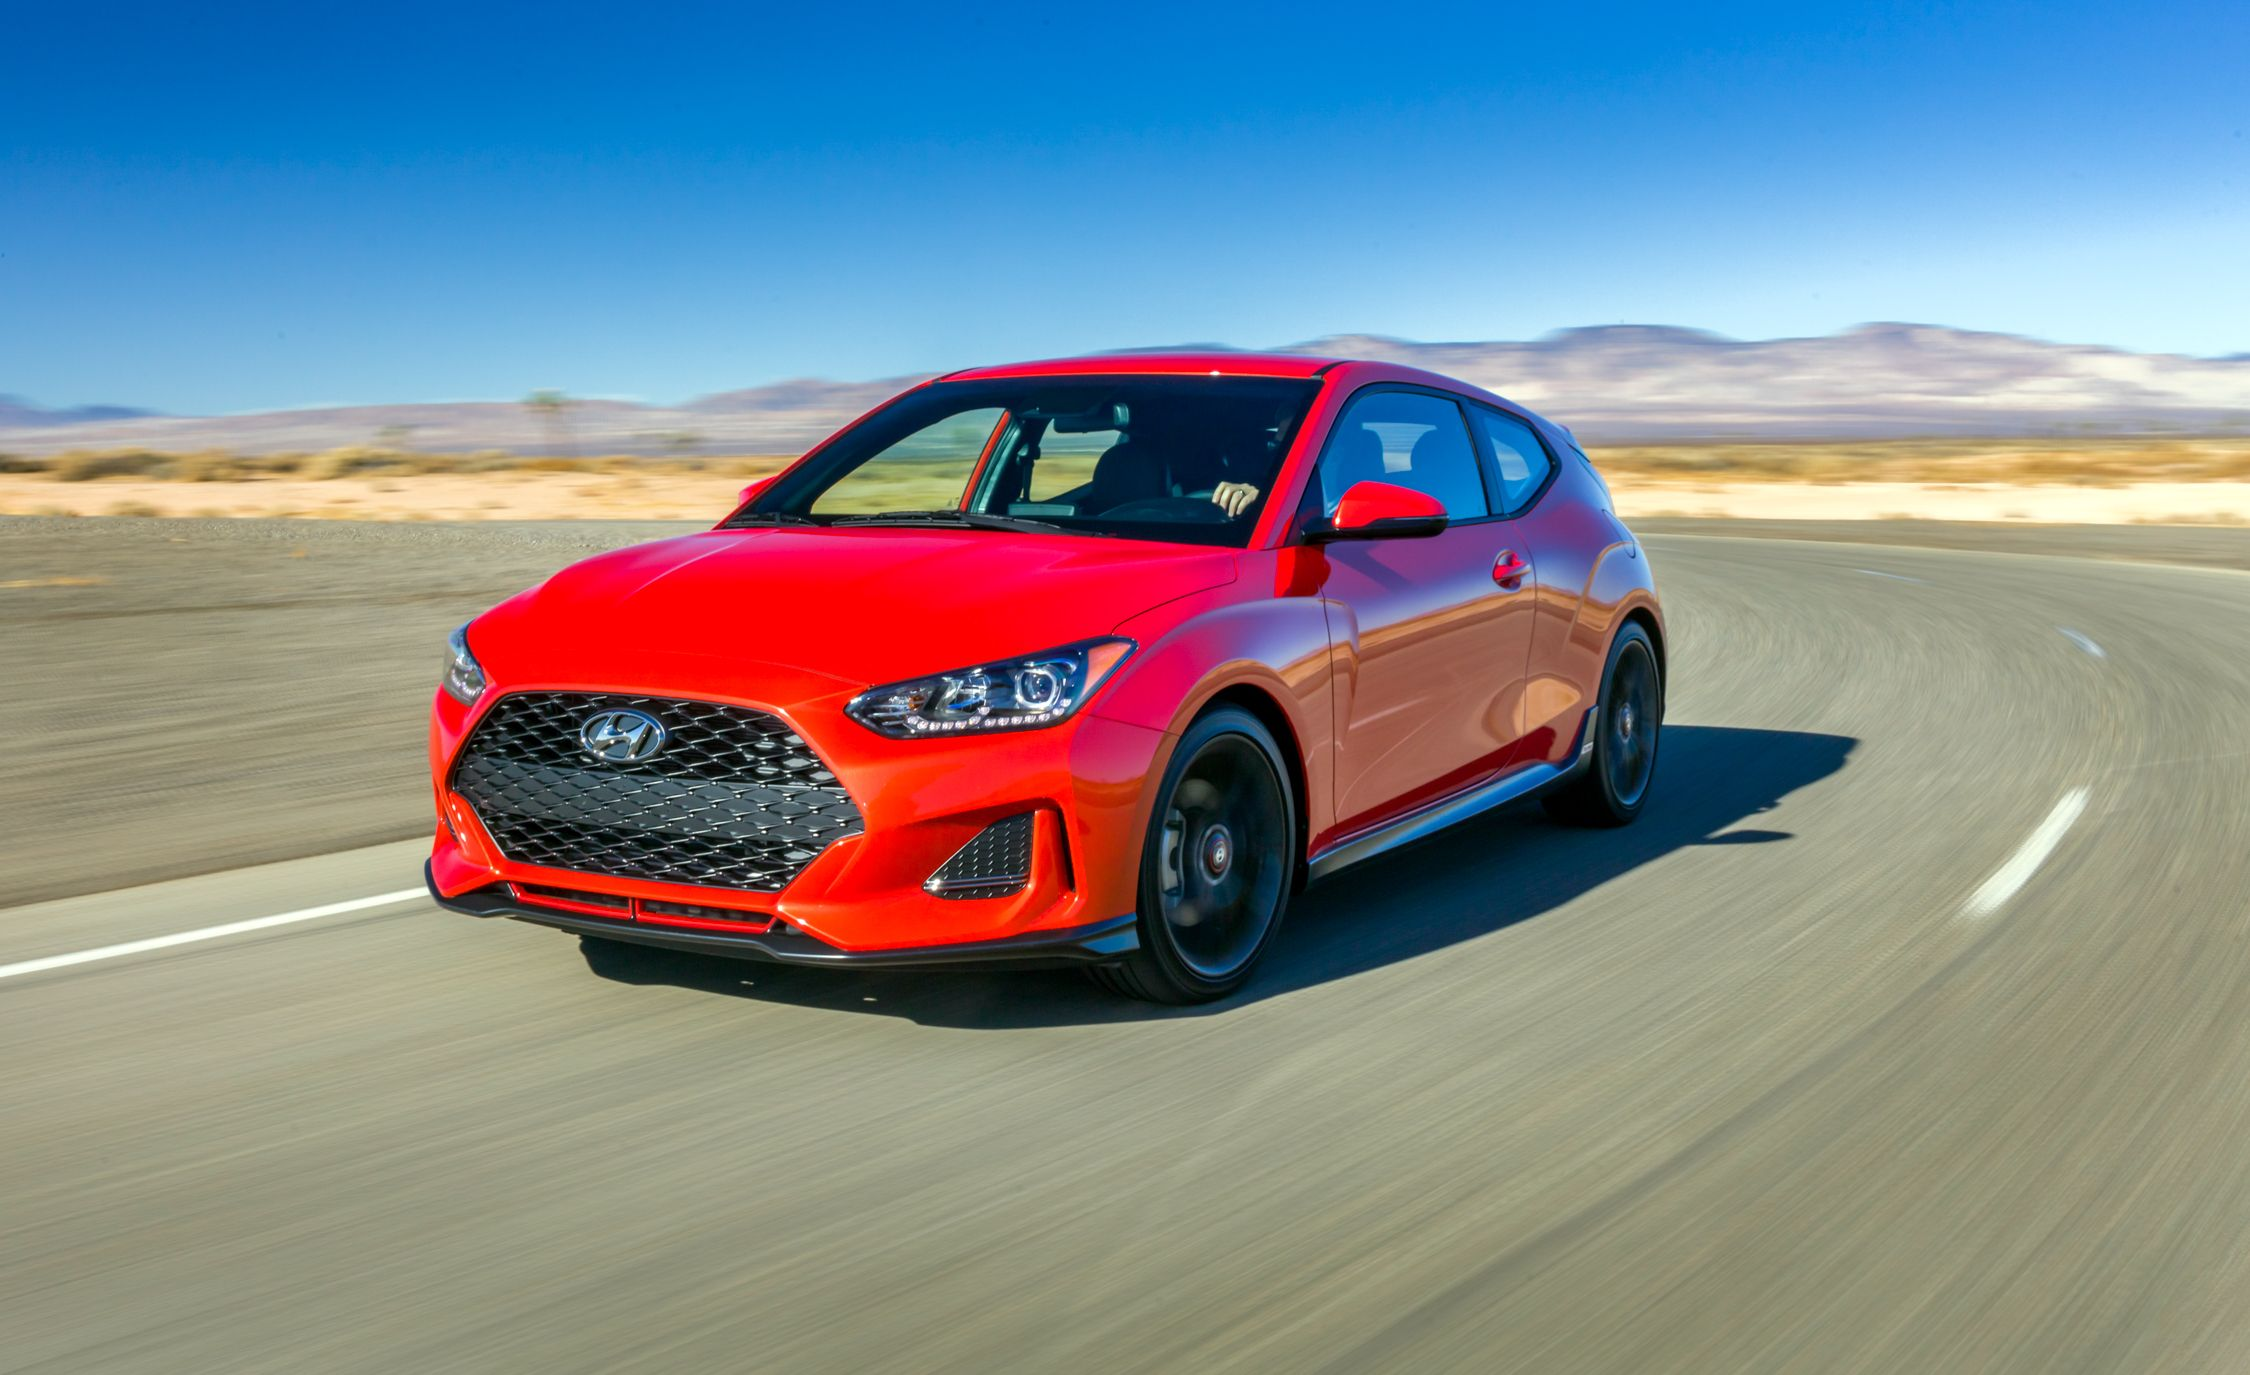 Three Doors Down 2019 Hyundai Veloster Priced from $19385 : veloster doors - pezcame.com